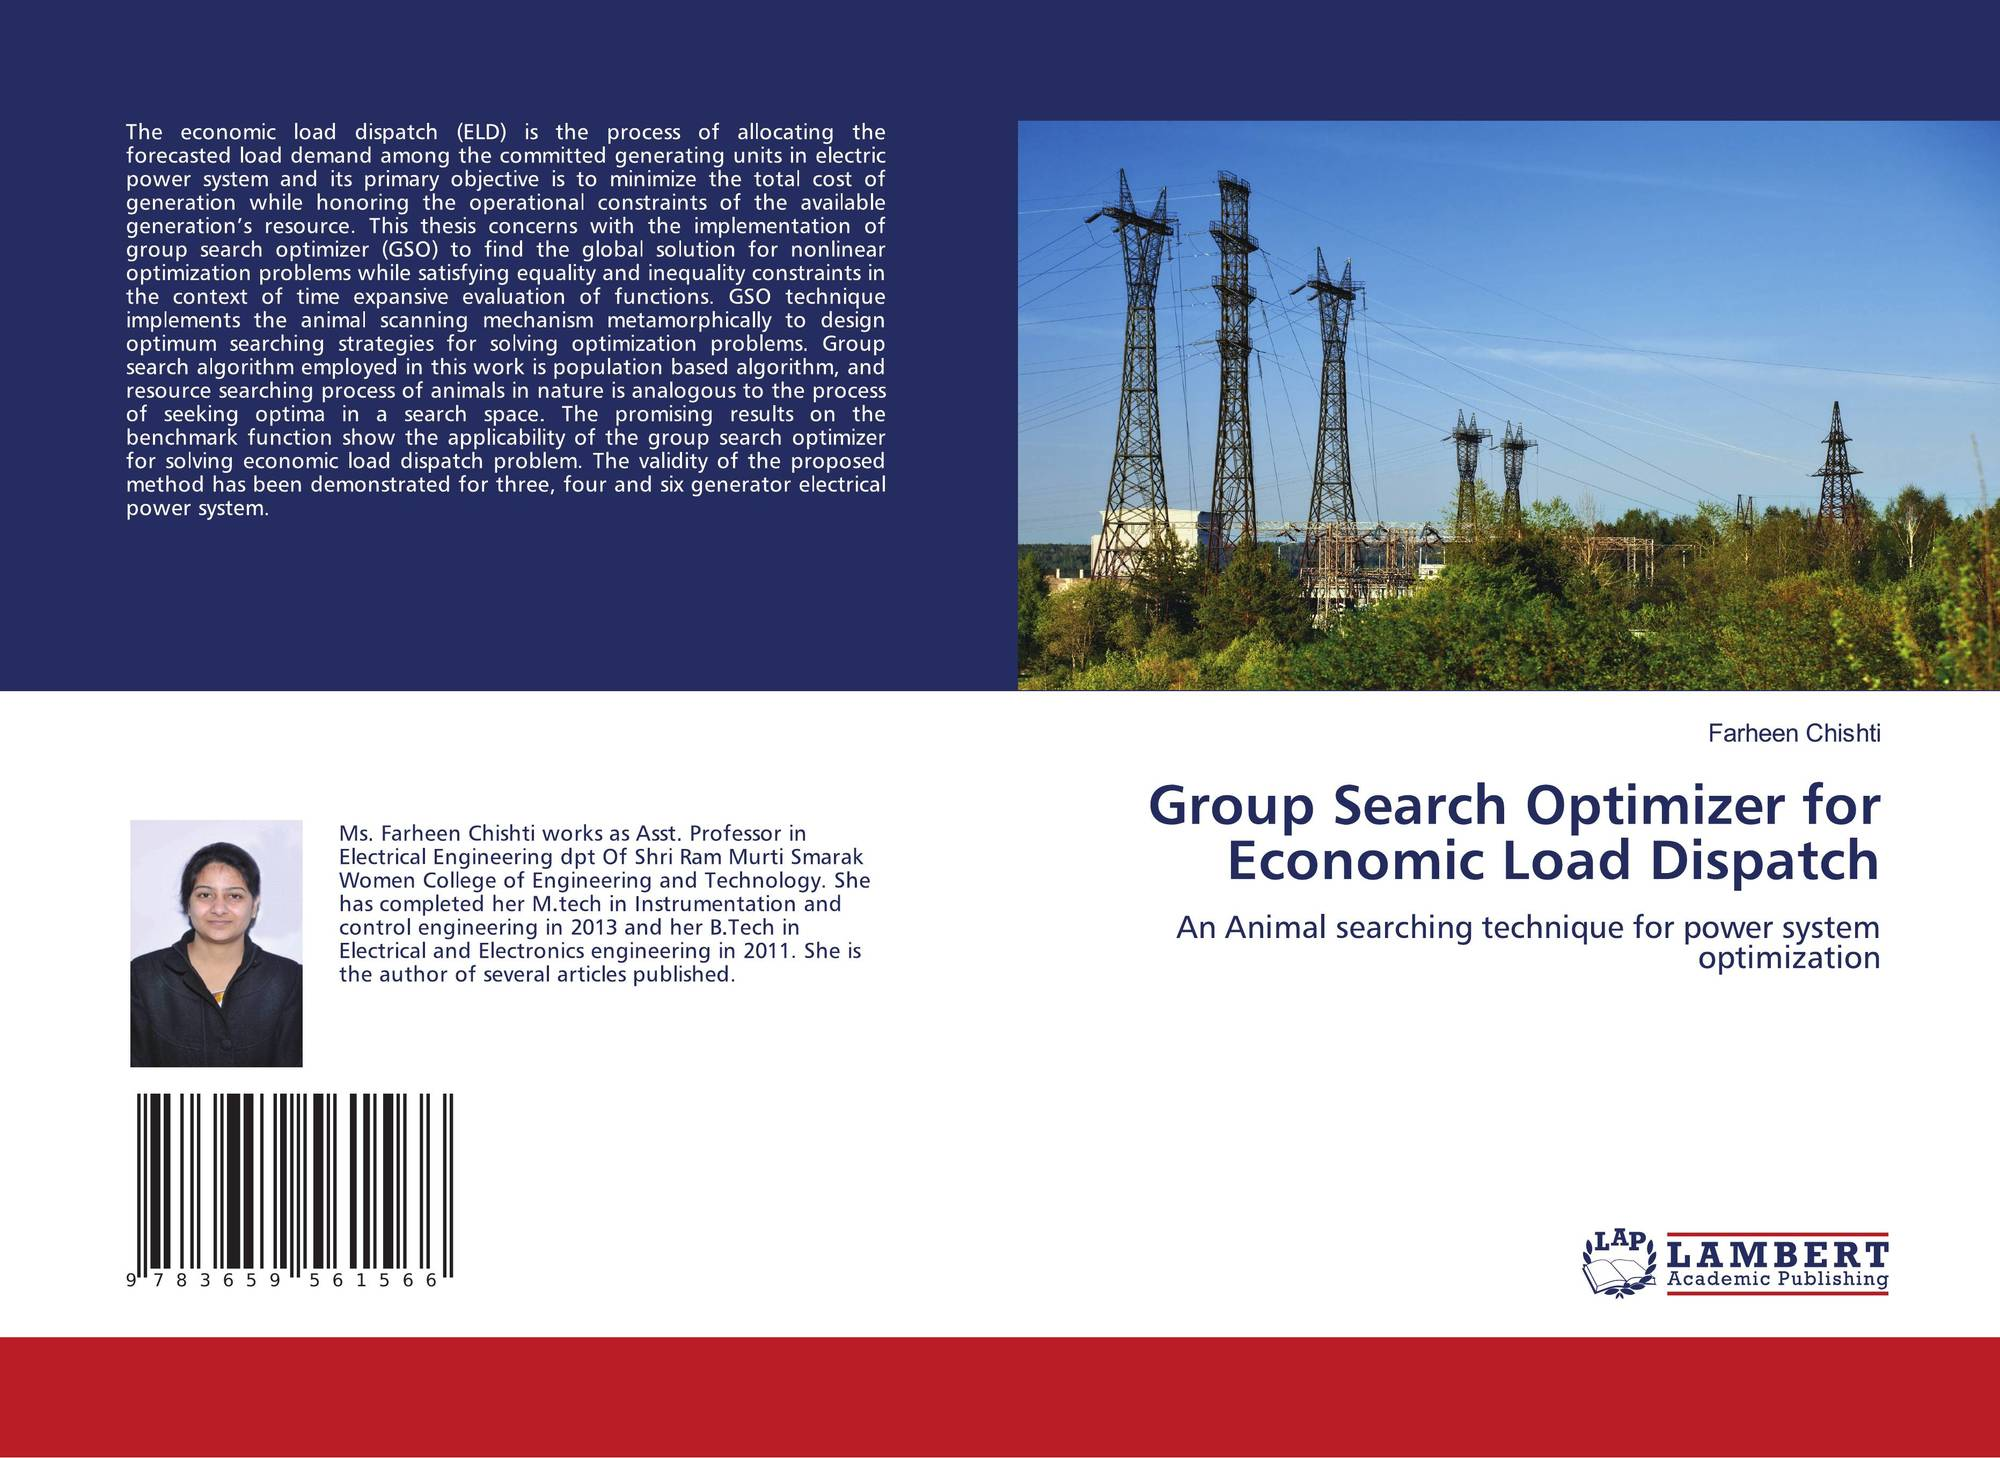 economic load dispatch thesis University of nairobi 11 economic dispatch showing results for power ratings for economic dispatch, emission dispatch and ceed at load demand of 2000mw for.